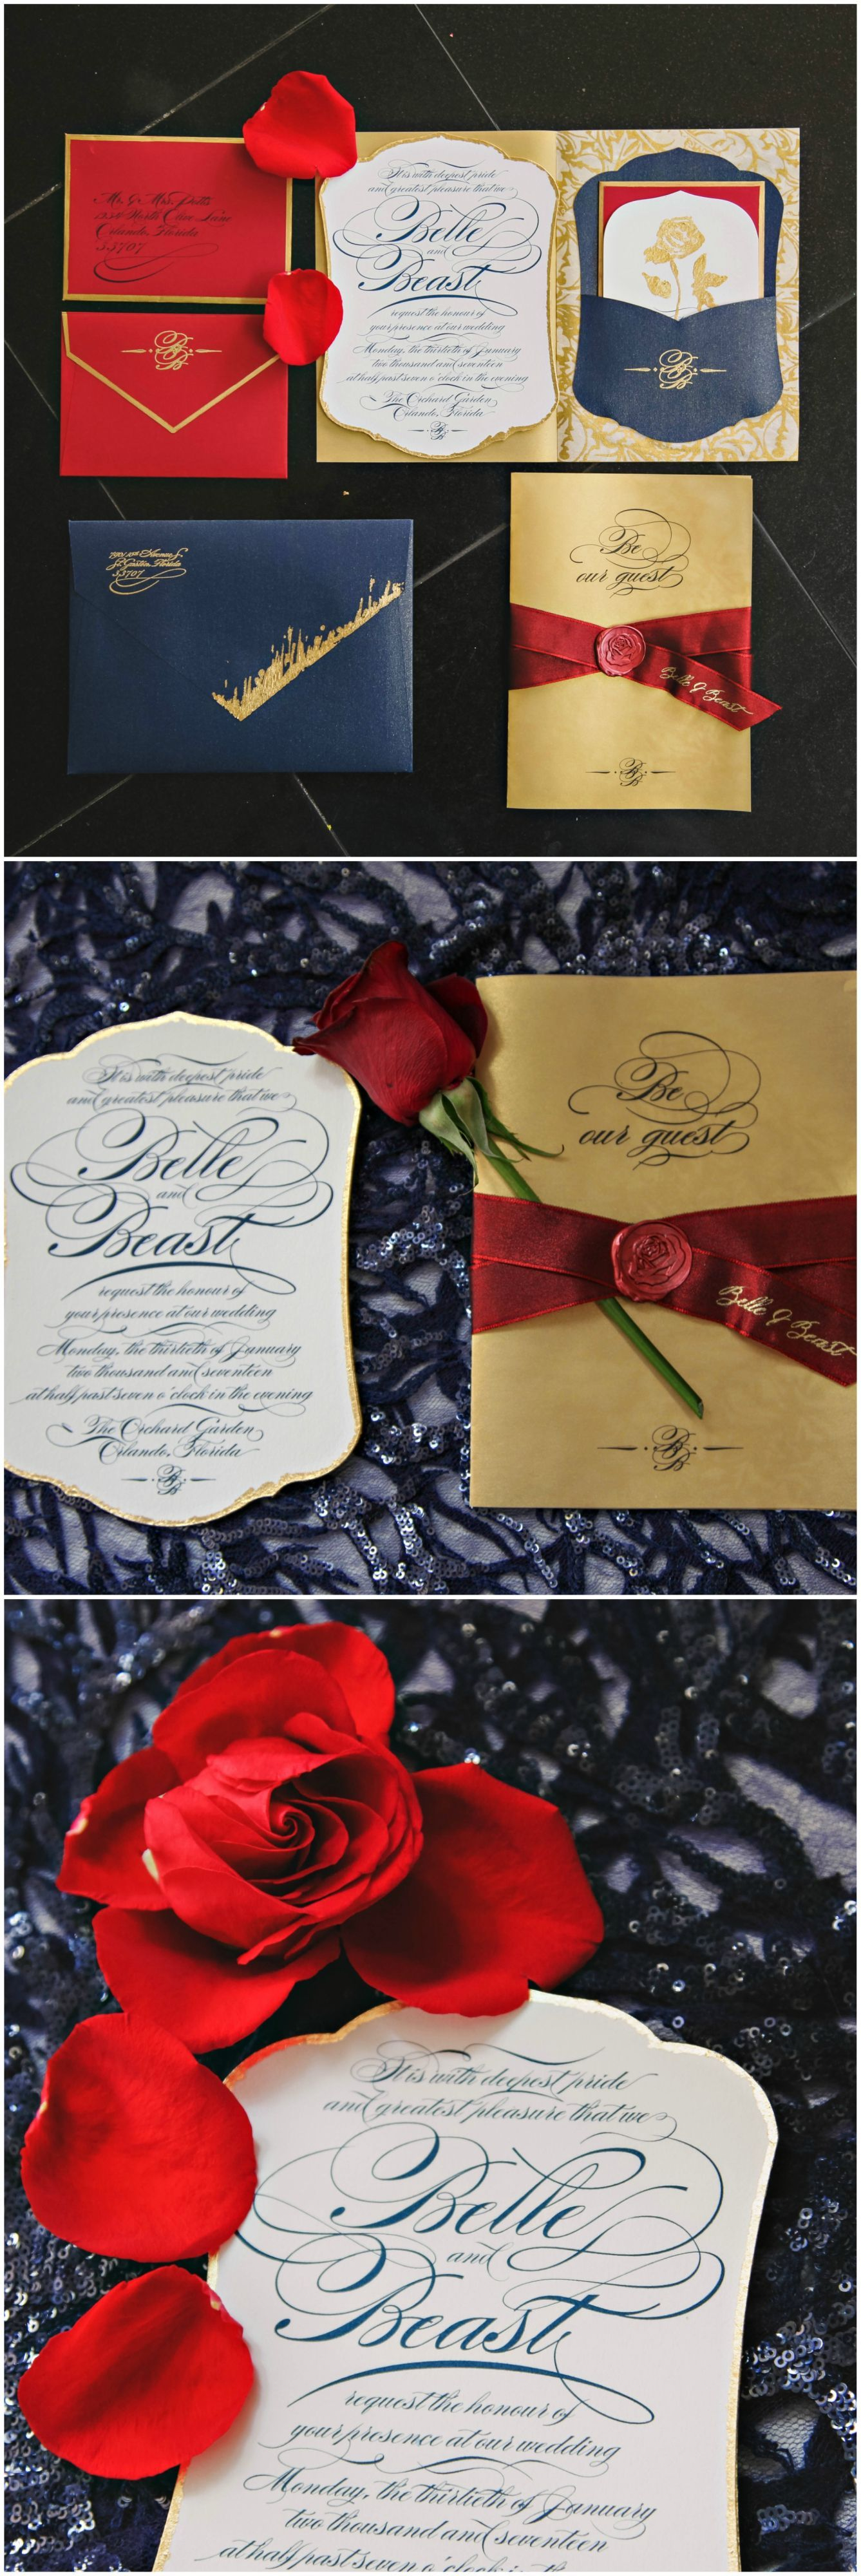 The Smarter Way to Wed | Gold invitations, Ribbon rose and Wedding